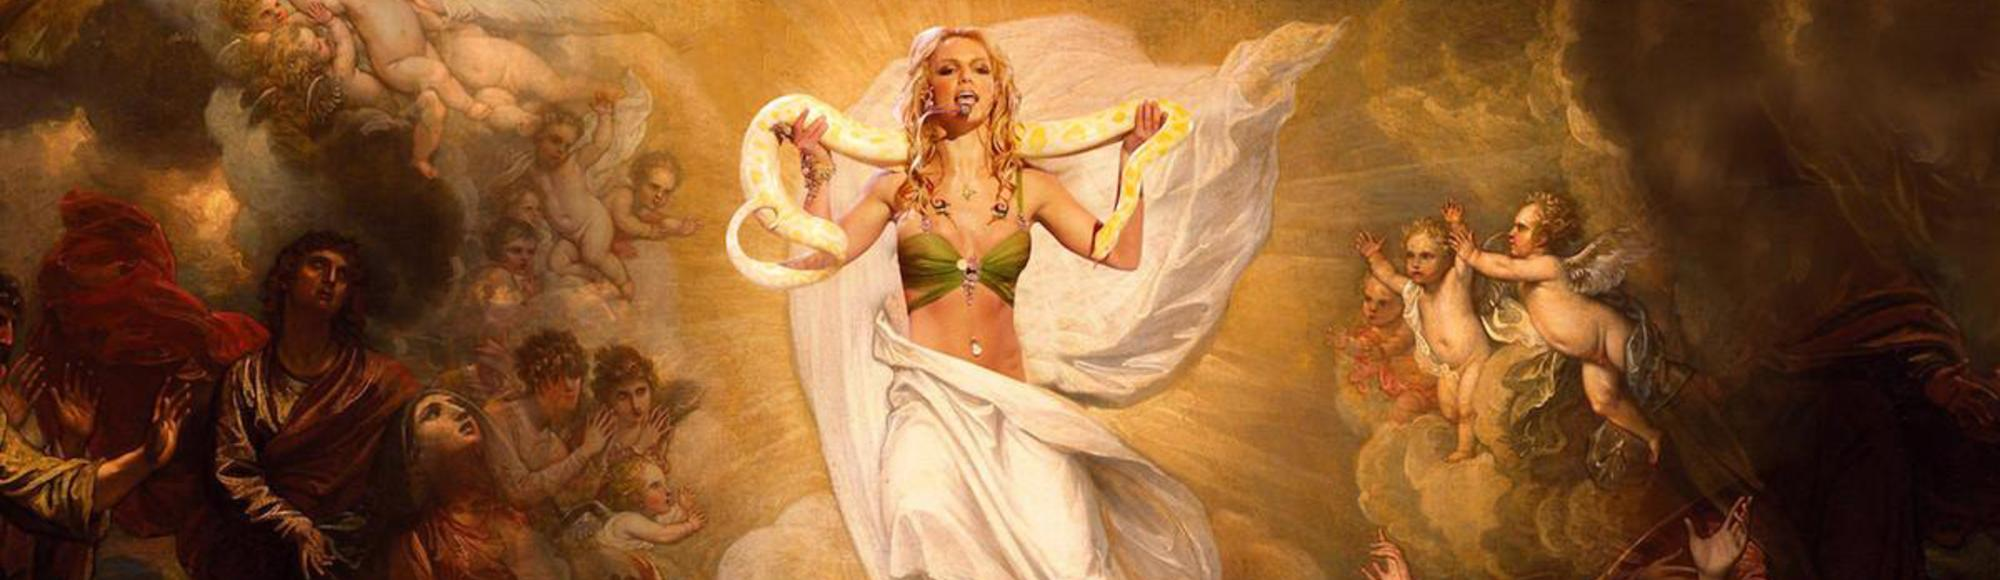 The Resurrection of Britney Spears